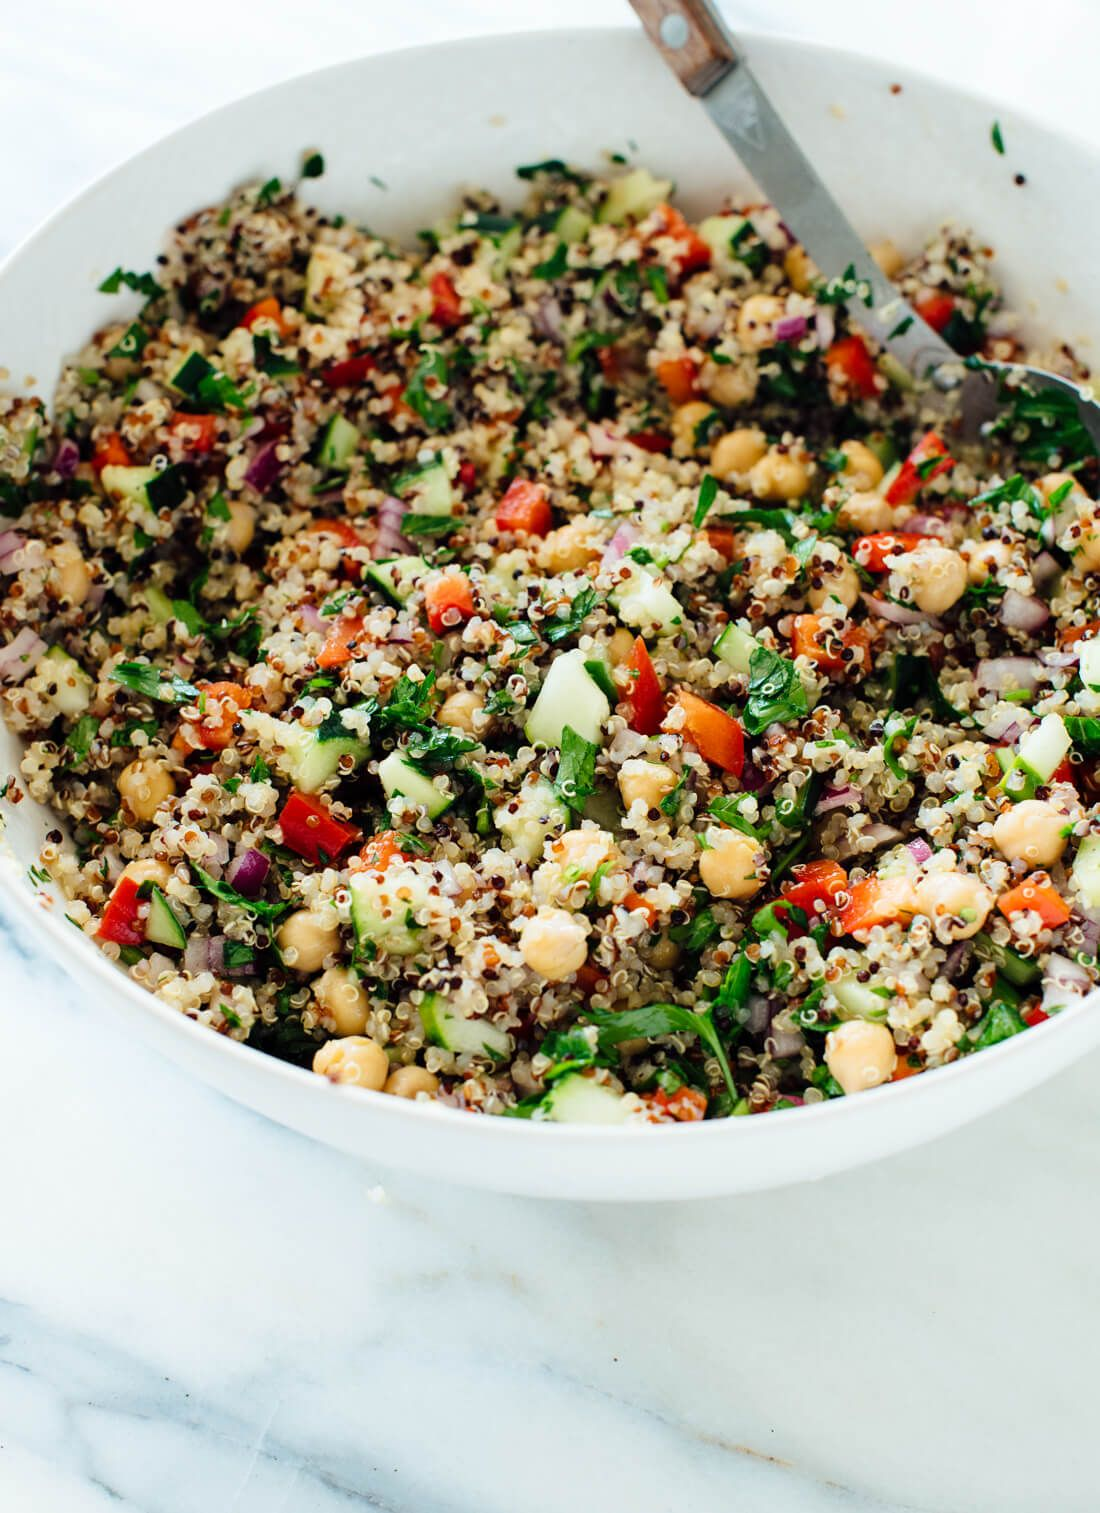 Salad made with quinoa, chickpeas, red bell pepper, cucumber, parsley and lemon.